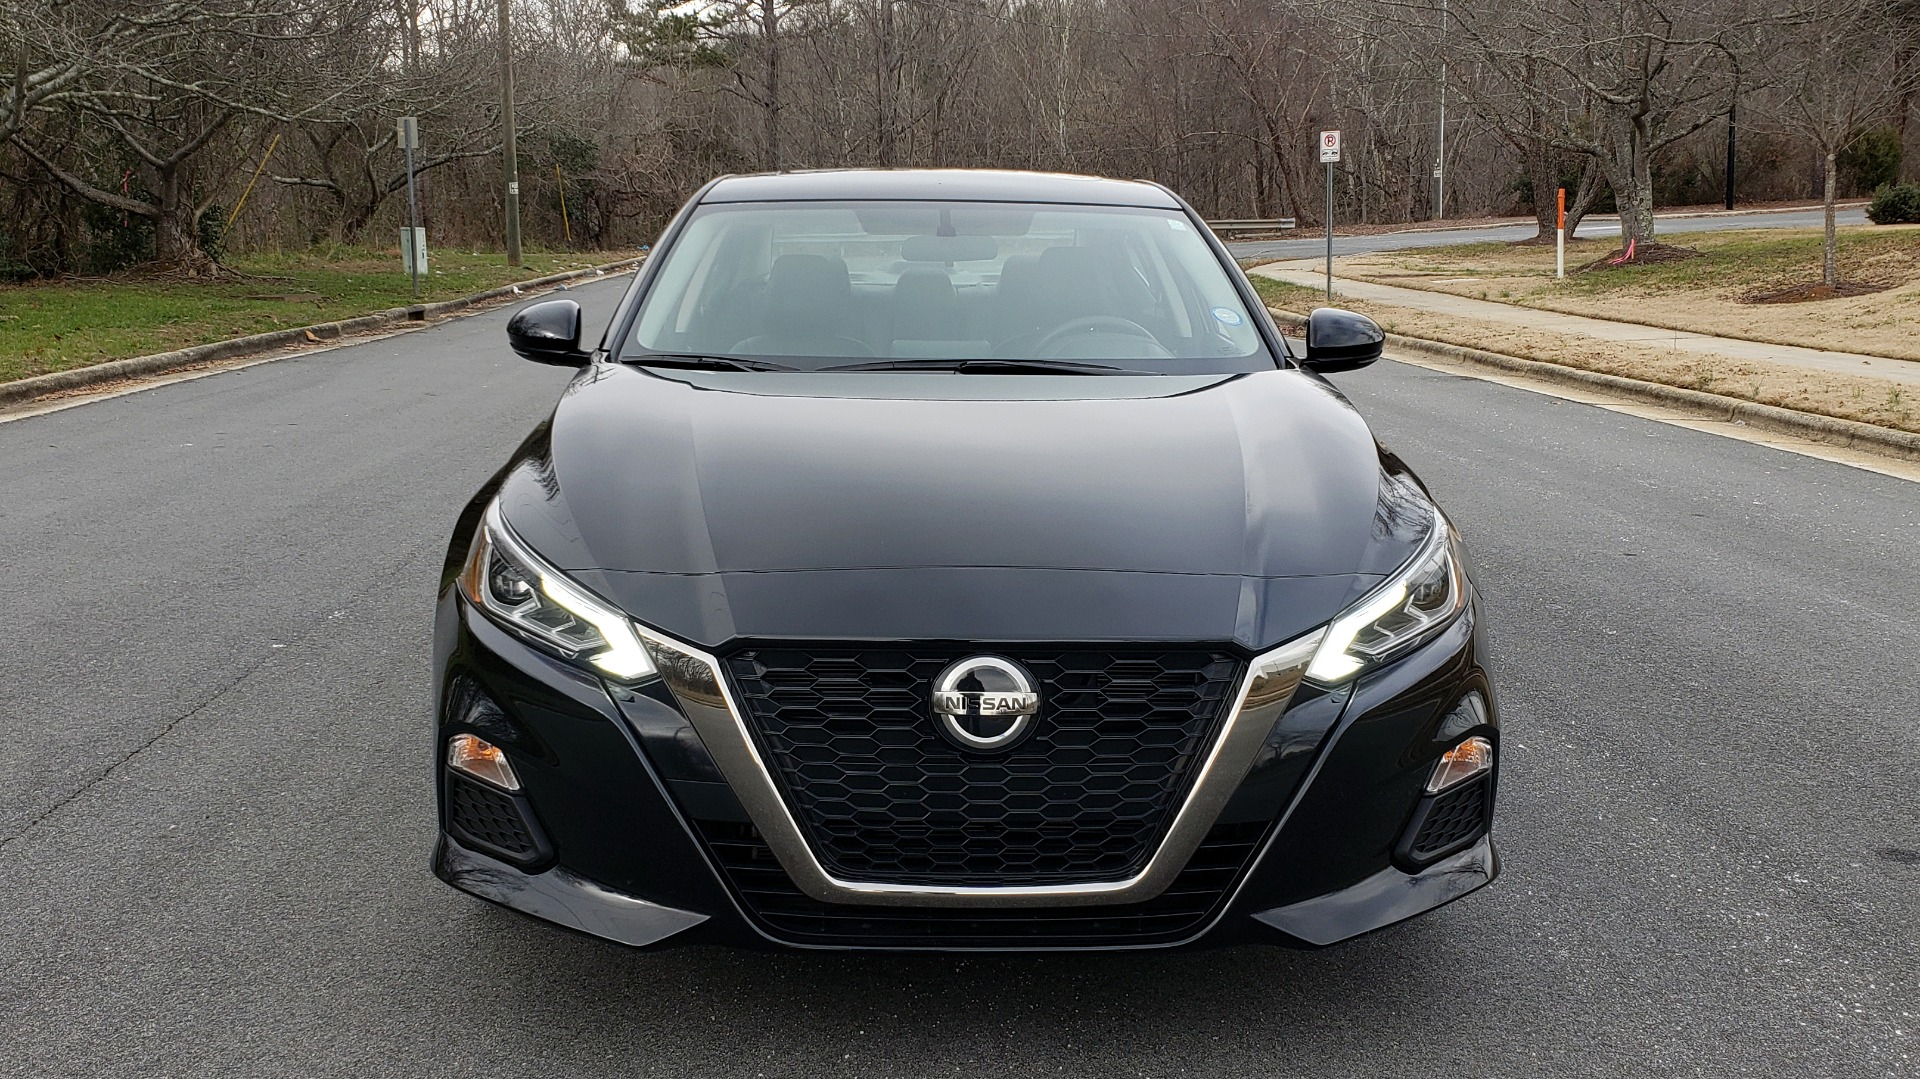 Used 2019 Nissan ALTIMA 2.5 SR PREMIUM / 2.5L / CVT TRANS / HTD STS / SUNROOF / REARVIEW for sale Sold at Formula Imports in Charlotte NC 28227 21